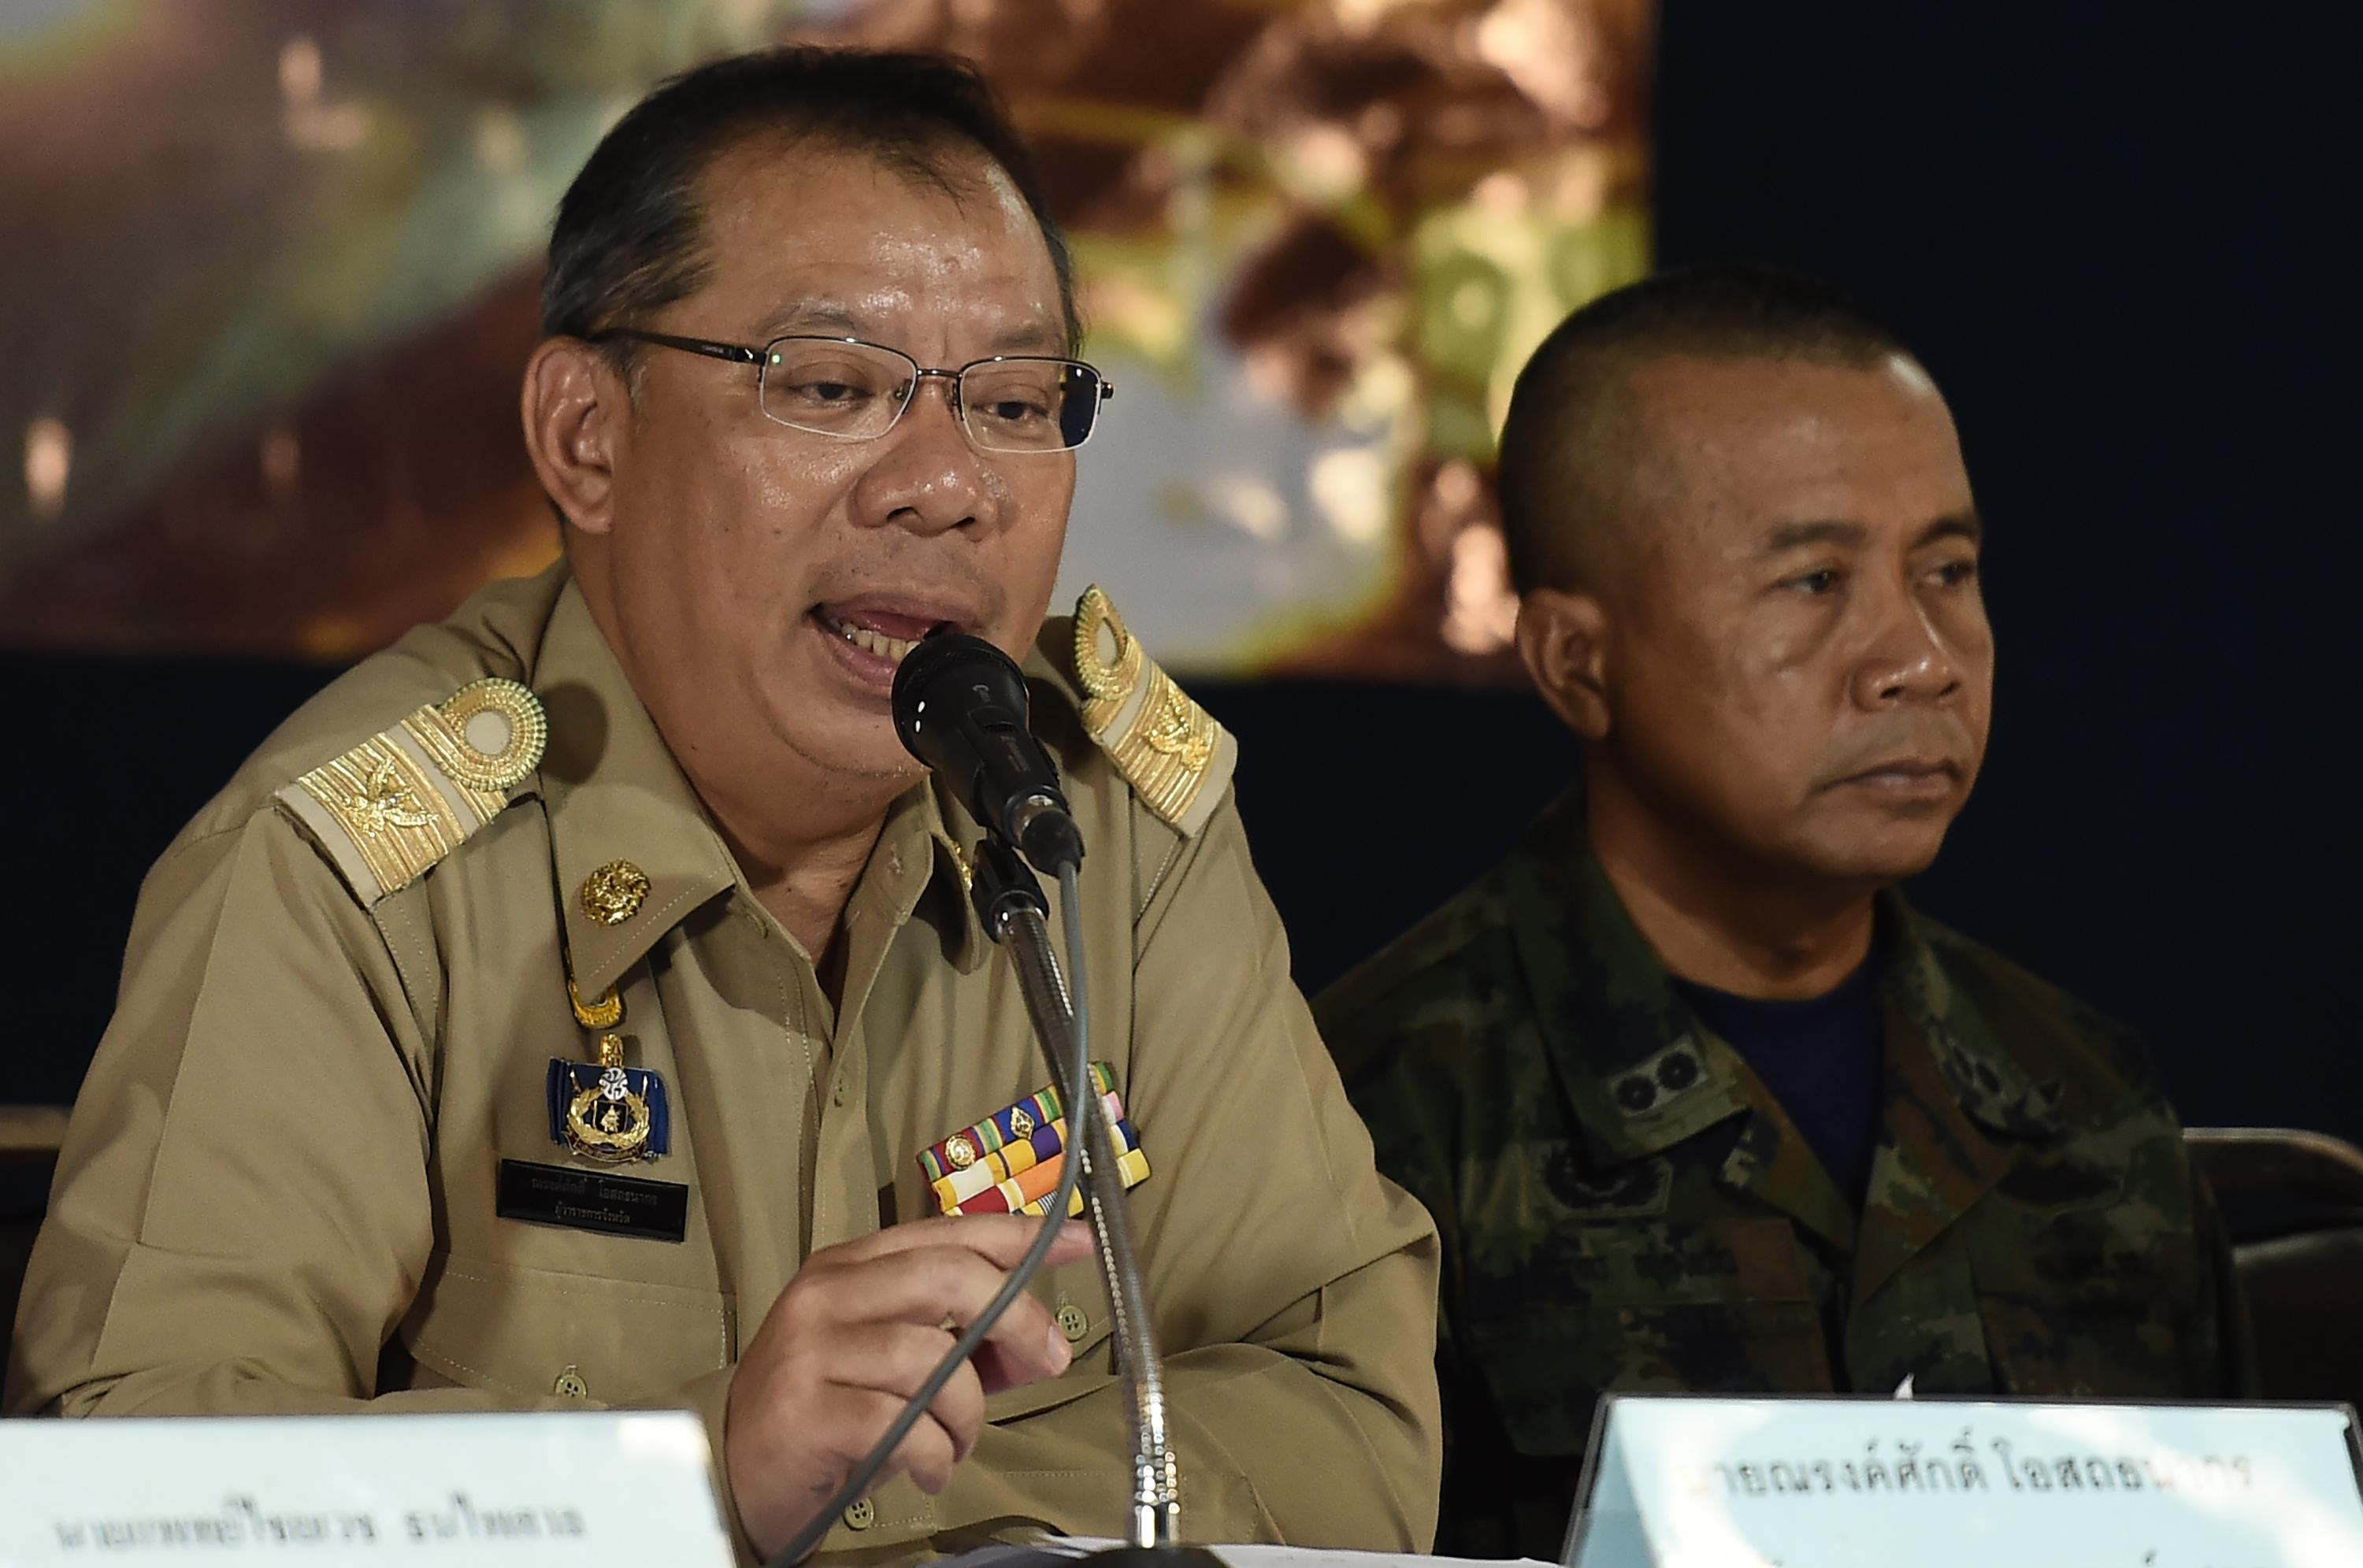 Narongsak Osotthanakorn, wearing glasses and a brown uniform, speaks into a microphone.